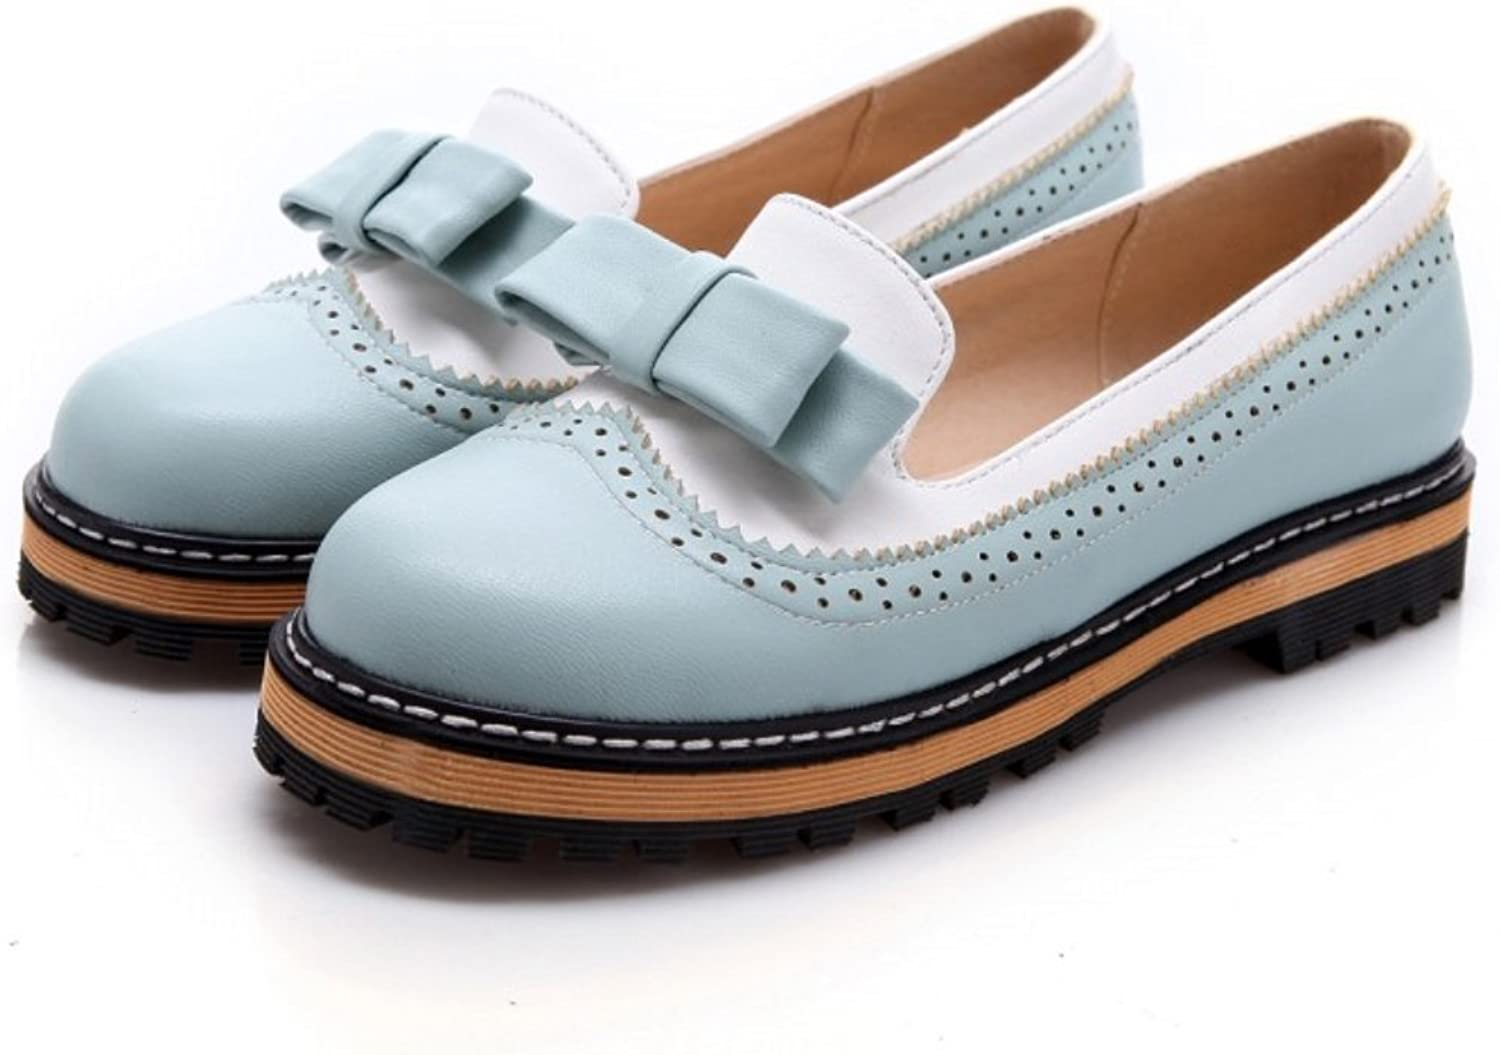 Unanshengenefi Women's Low Heel Bow Candy color Oxford shoes